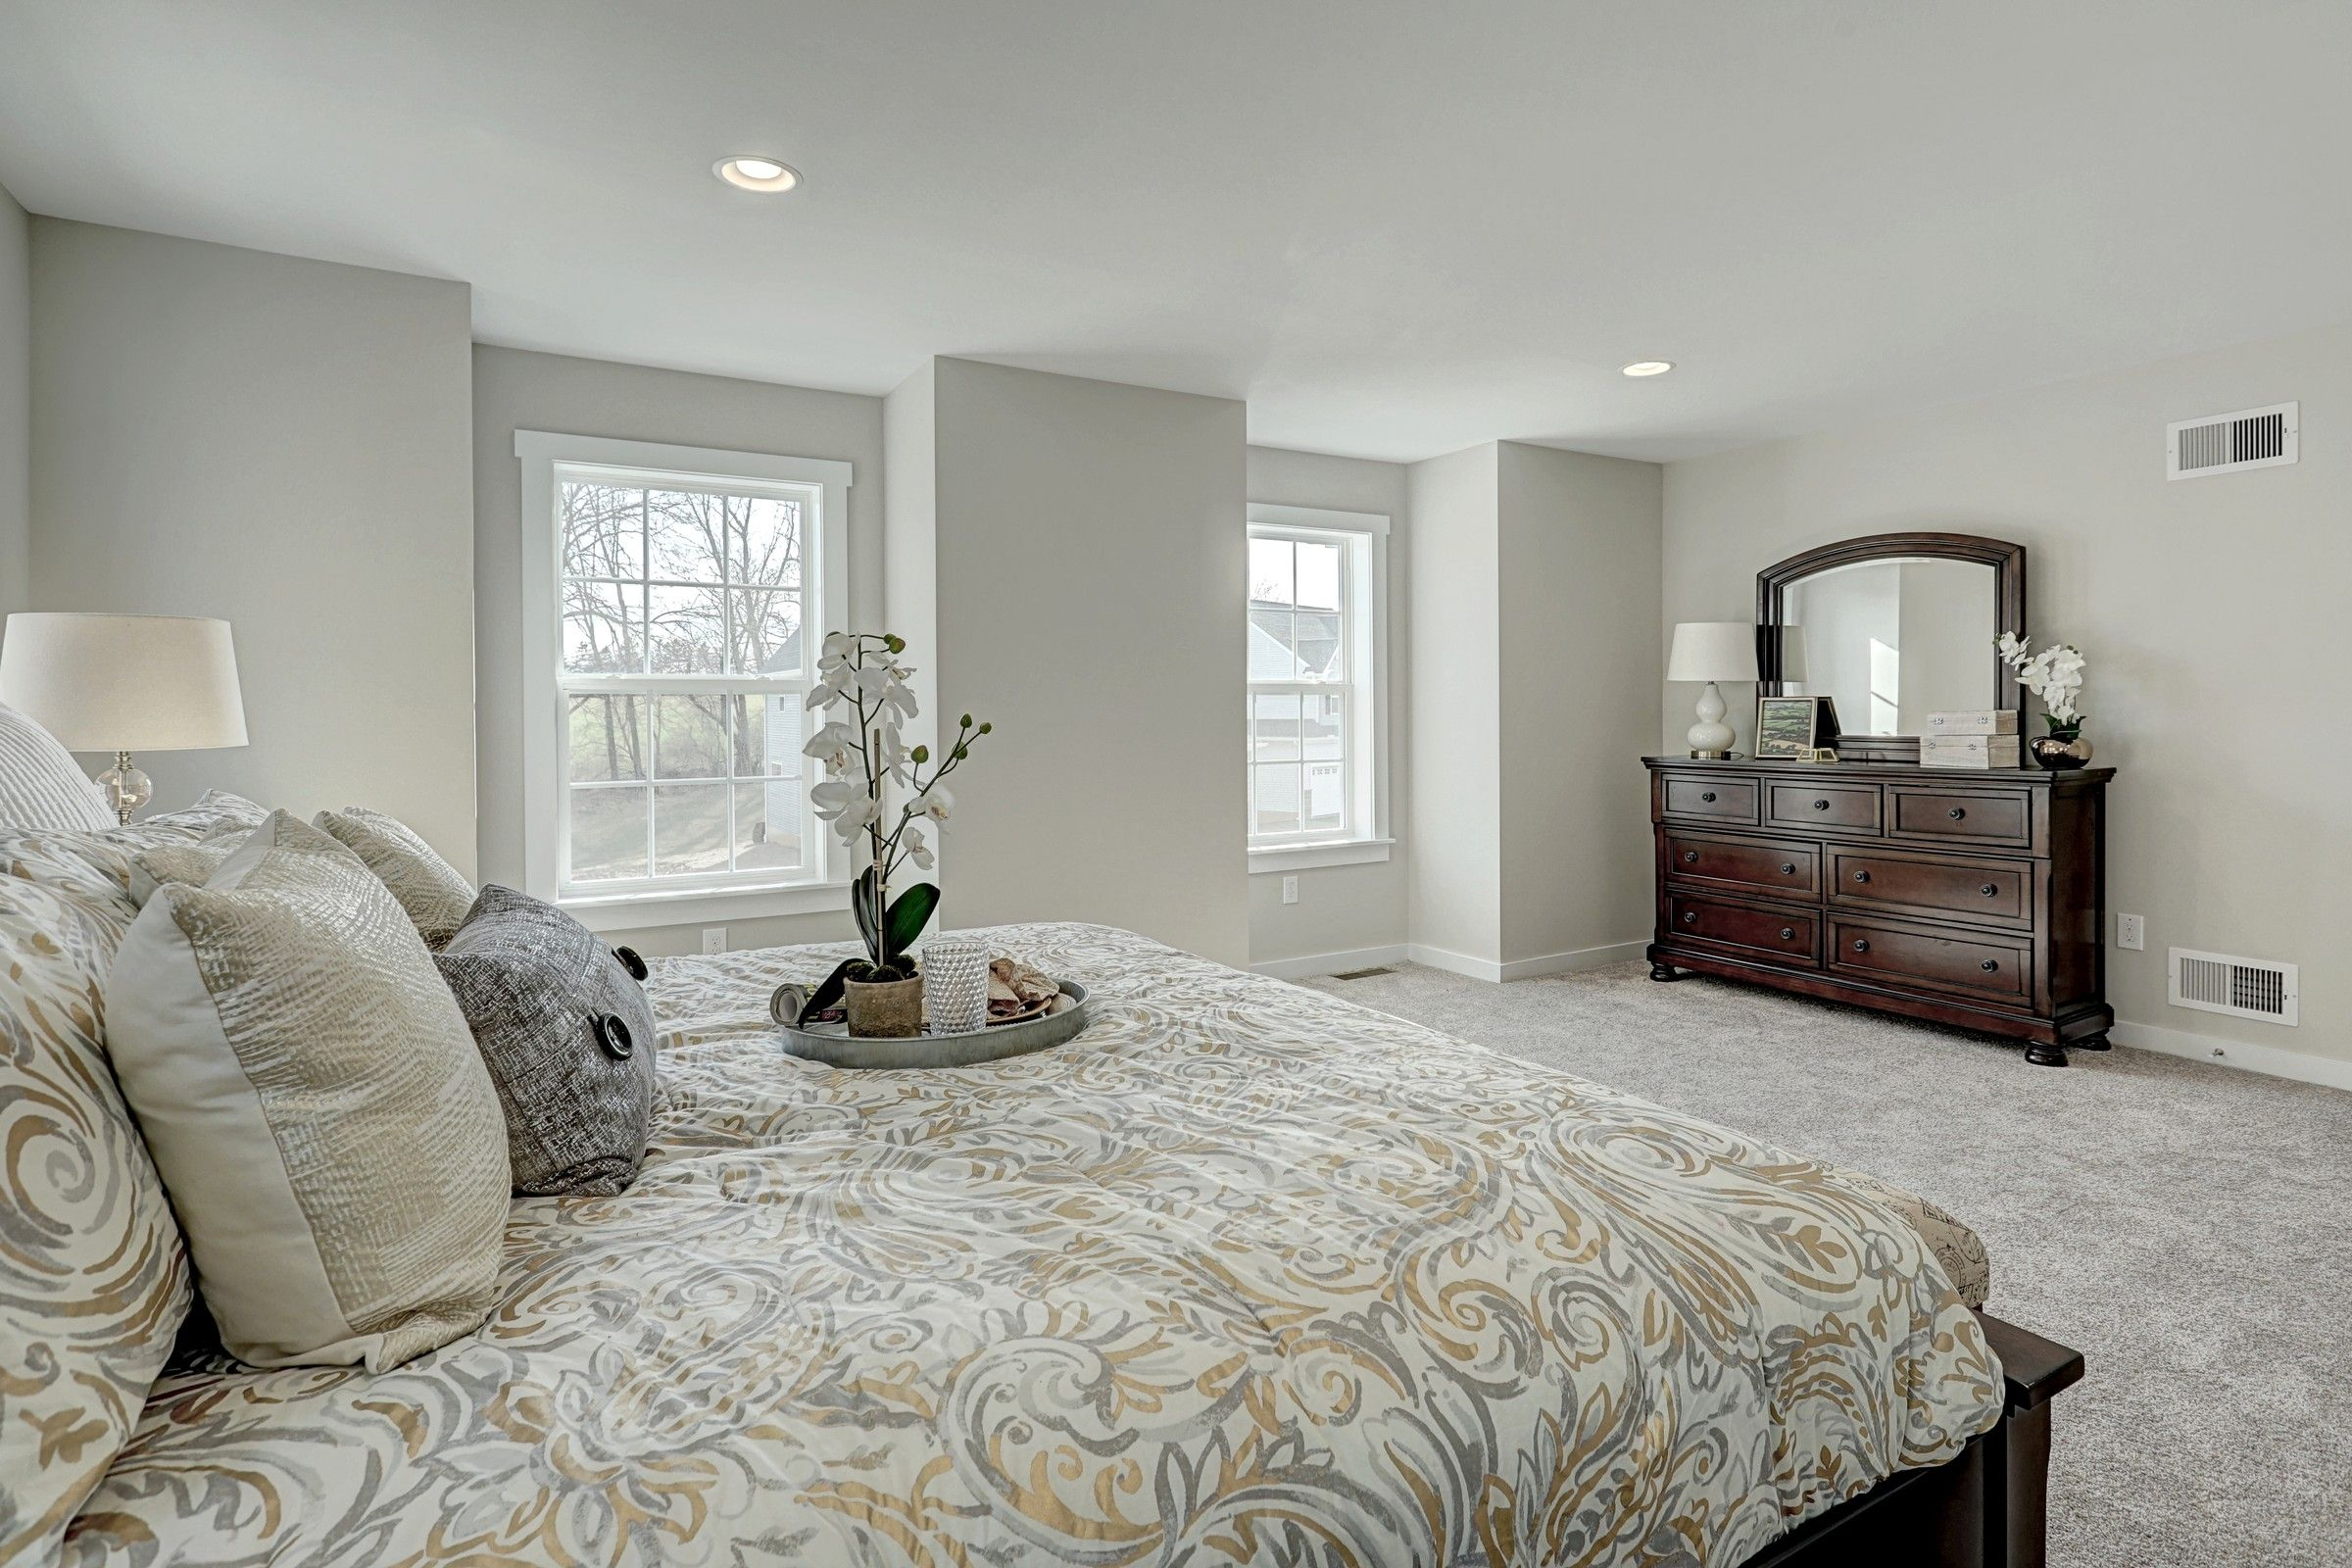 Bedroom featured in the Manchester Manor By Keystone Custom Homes in Harrisburg, PA